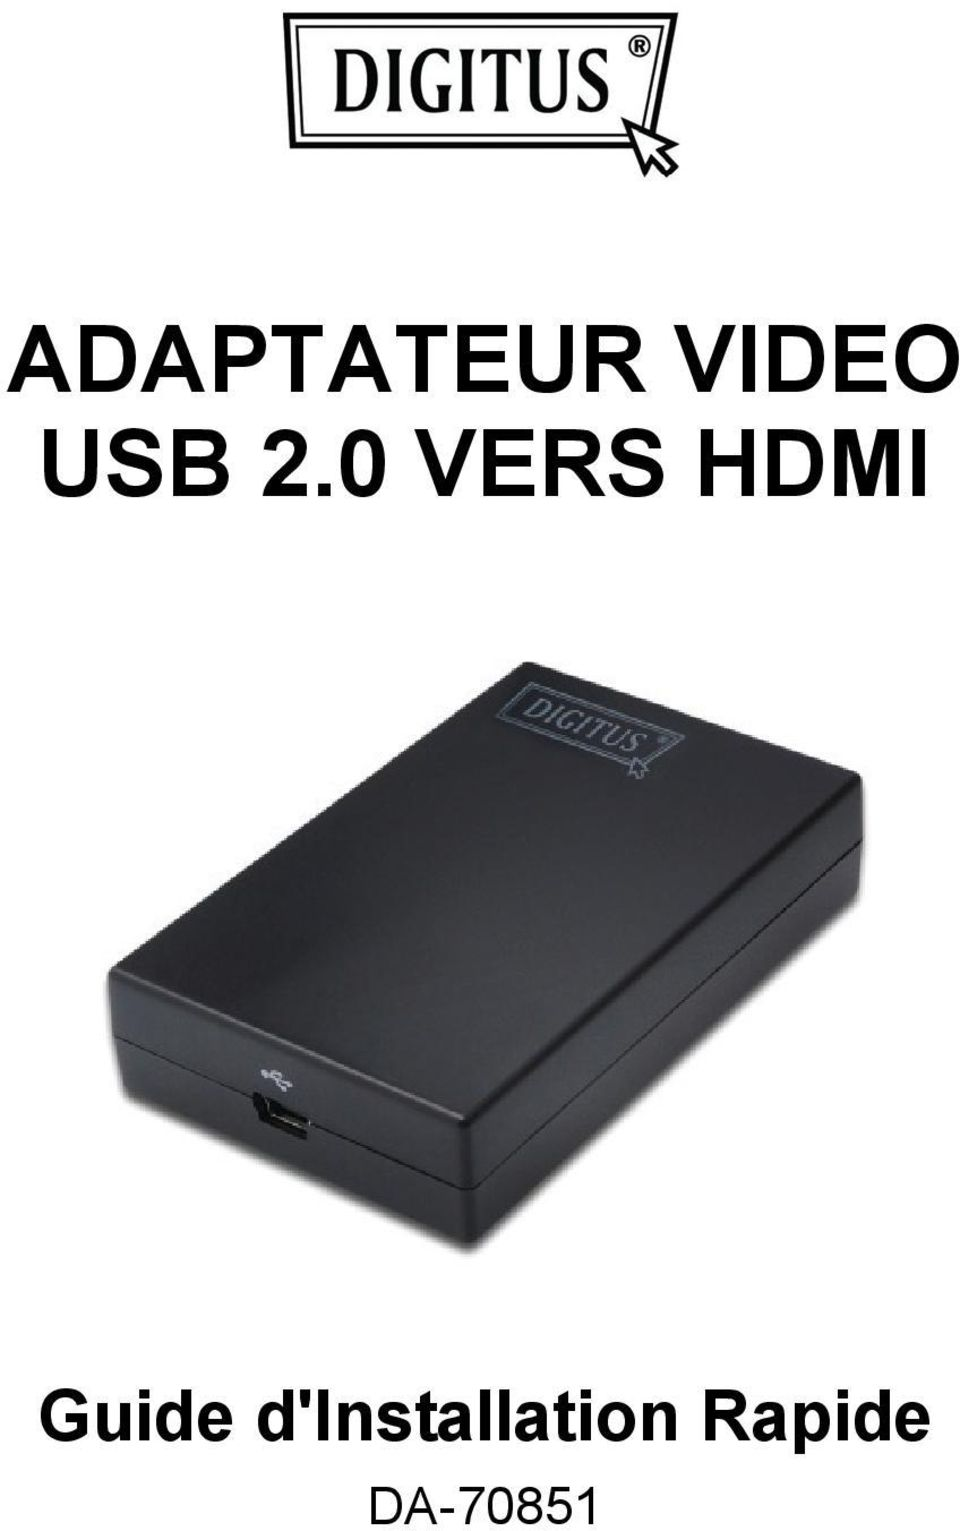 0 VERS HDMI Guide